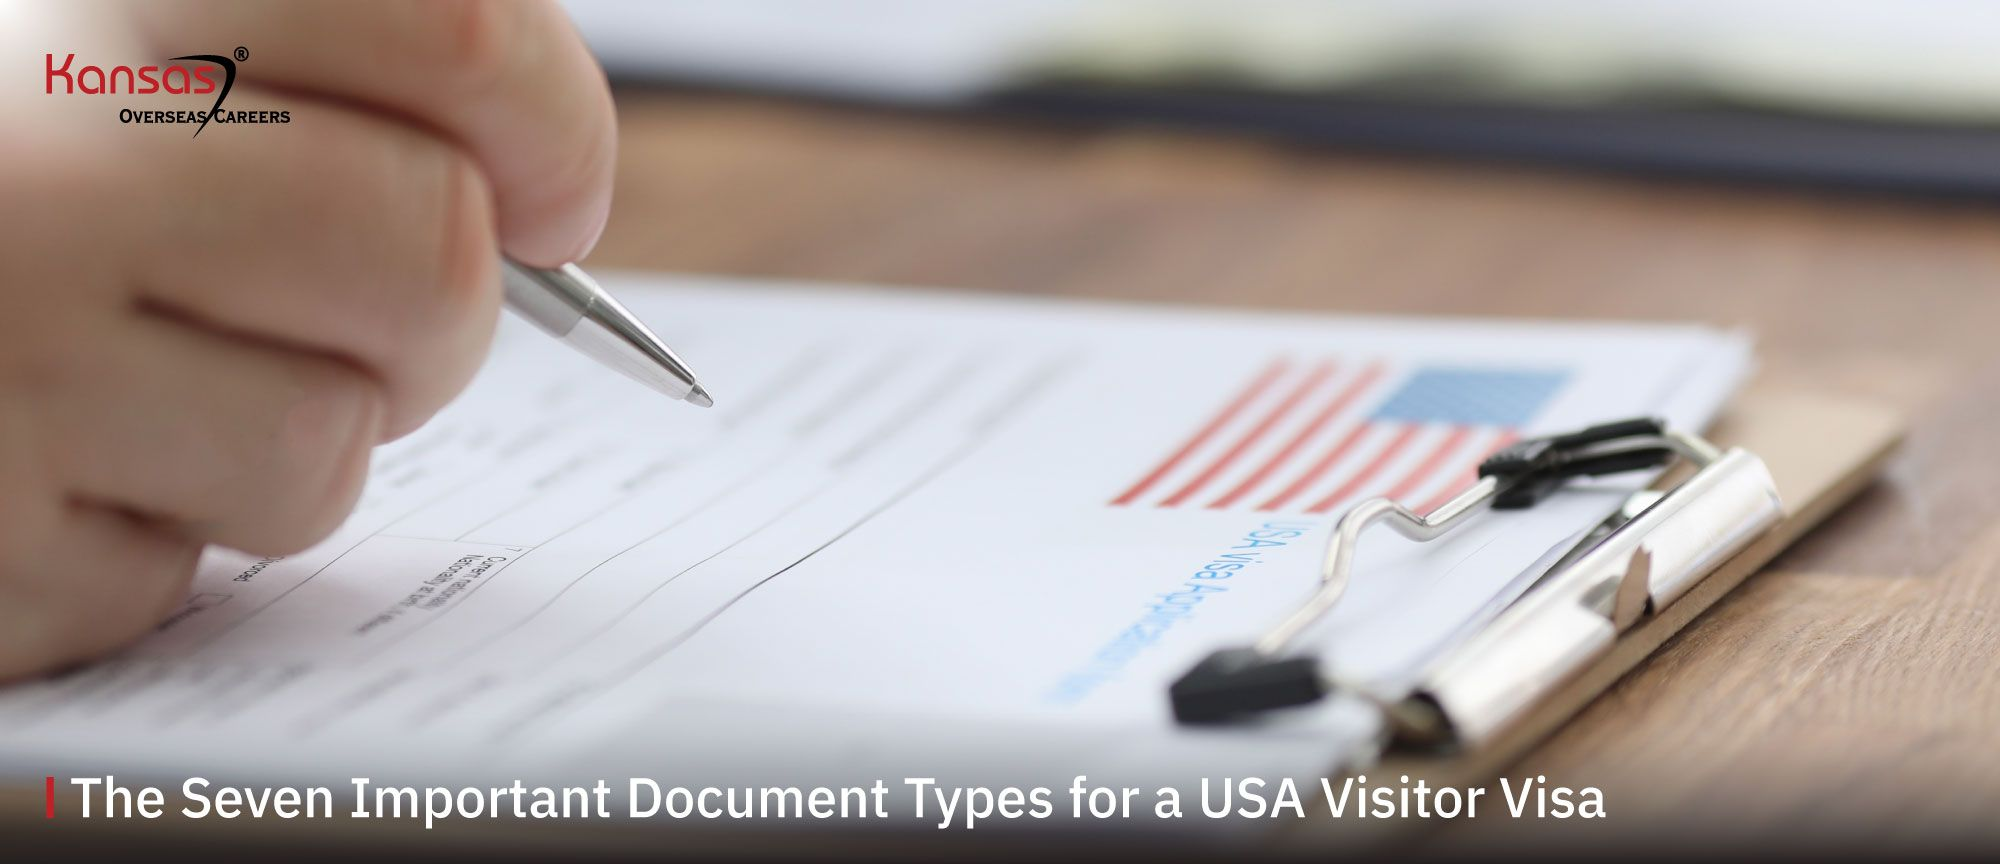 The-Seven-Important-Document-Types-for-a-USA-Visitor-Visa